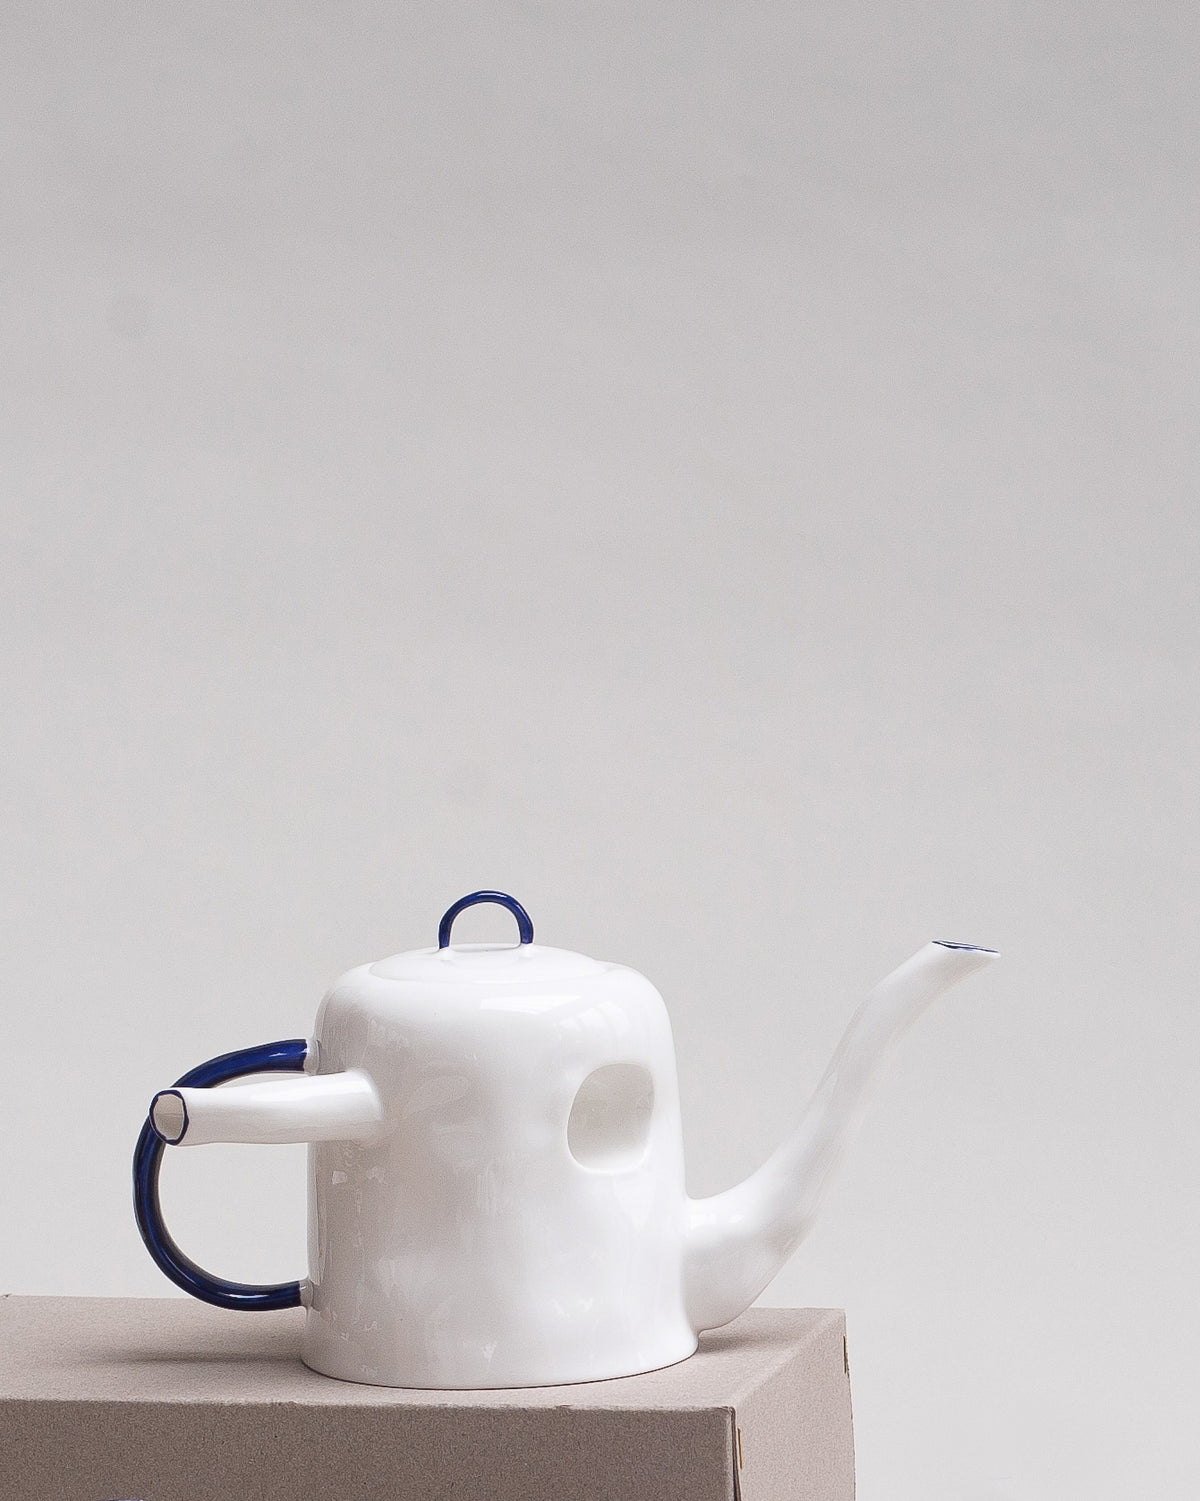 Surreal Teapot Eleven